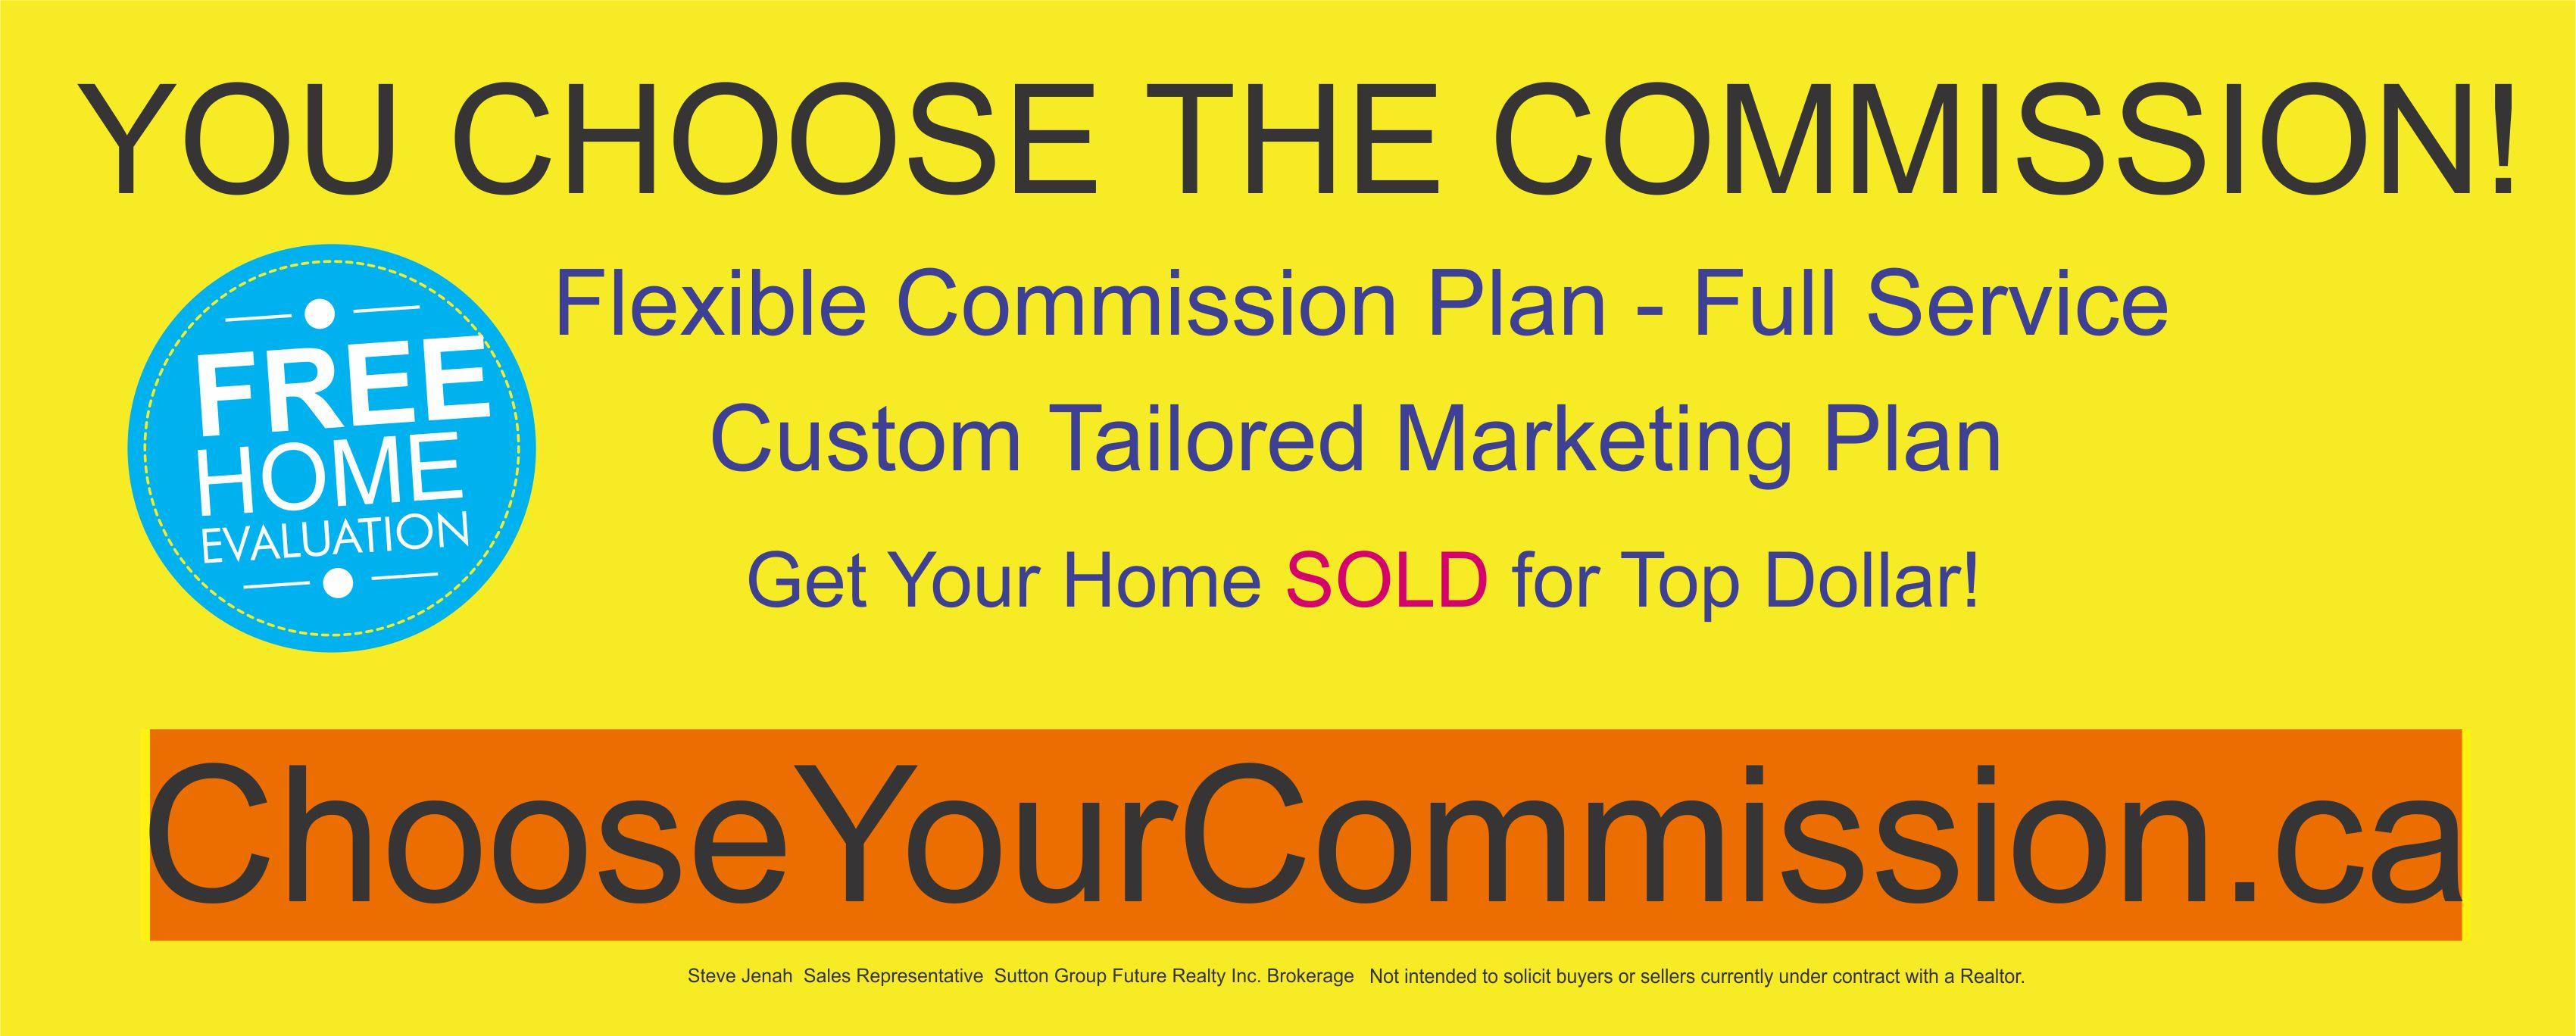 You Choose The Commission